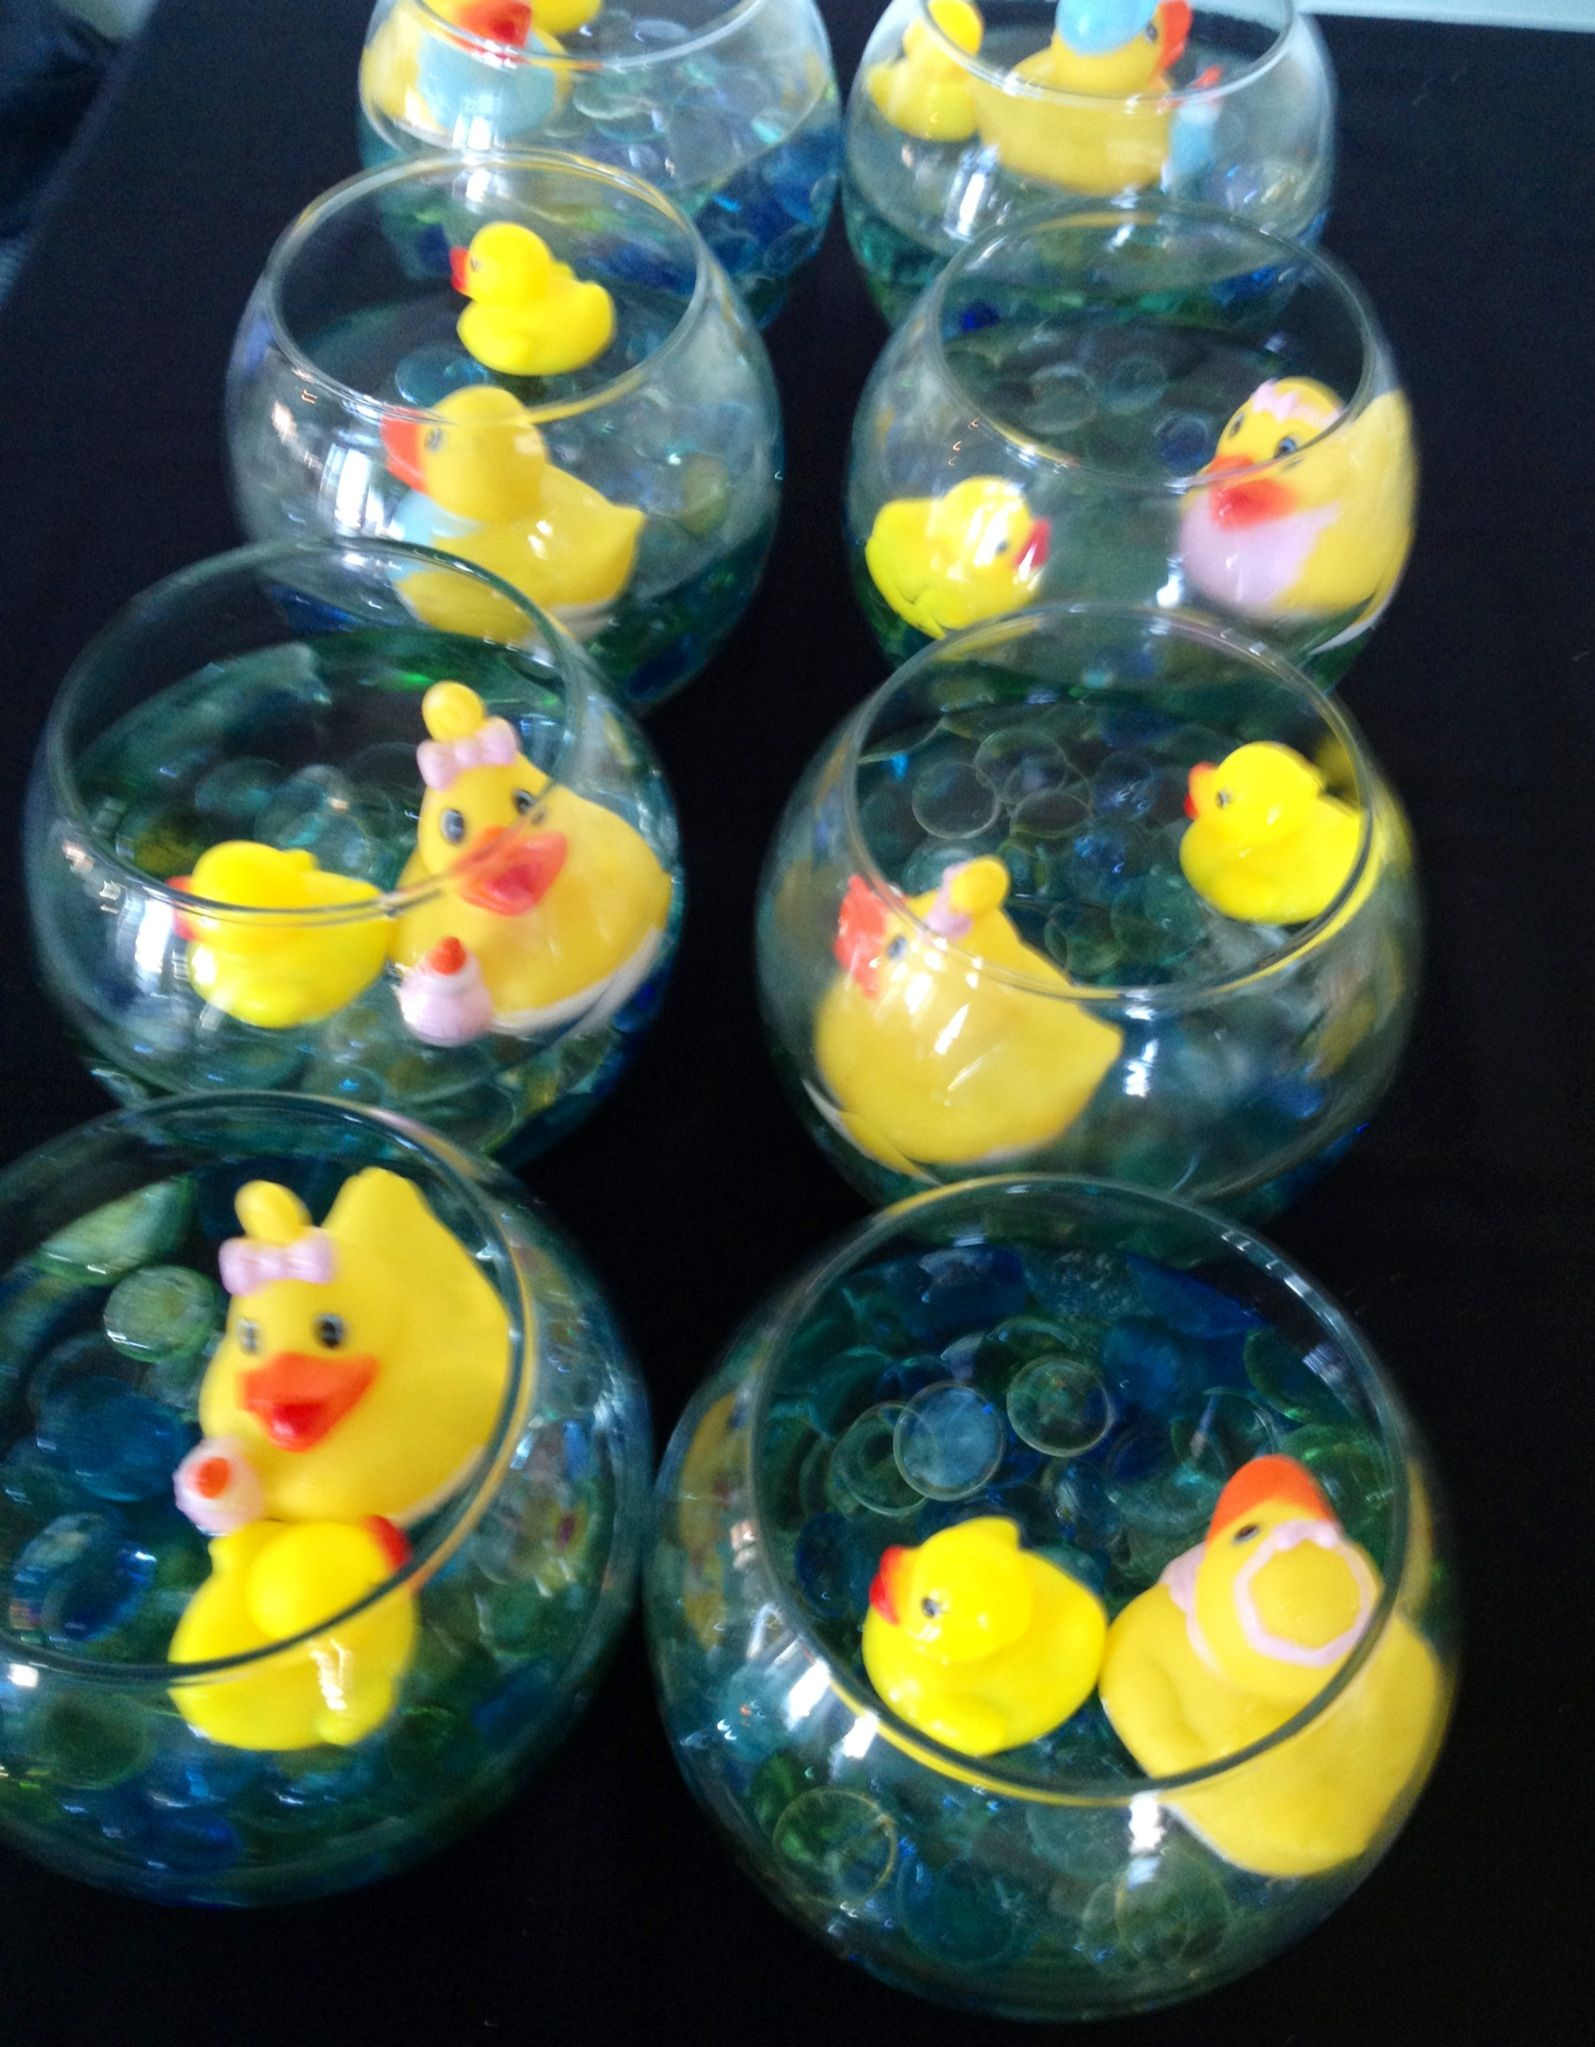 Table Decor! Mancala Beads, Water, And Rubber Ducks In A Glass Bowl